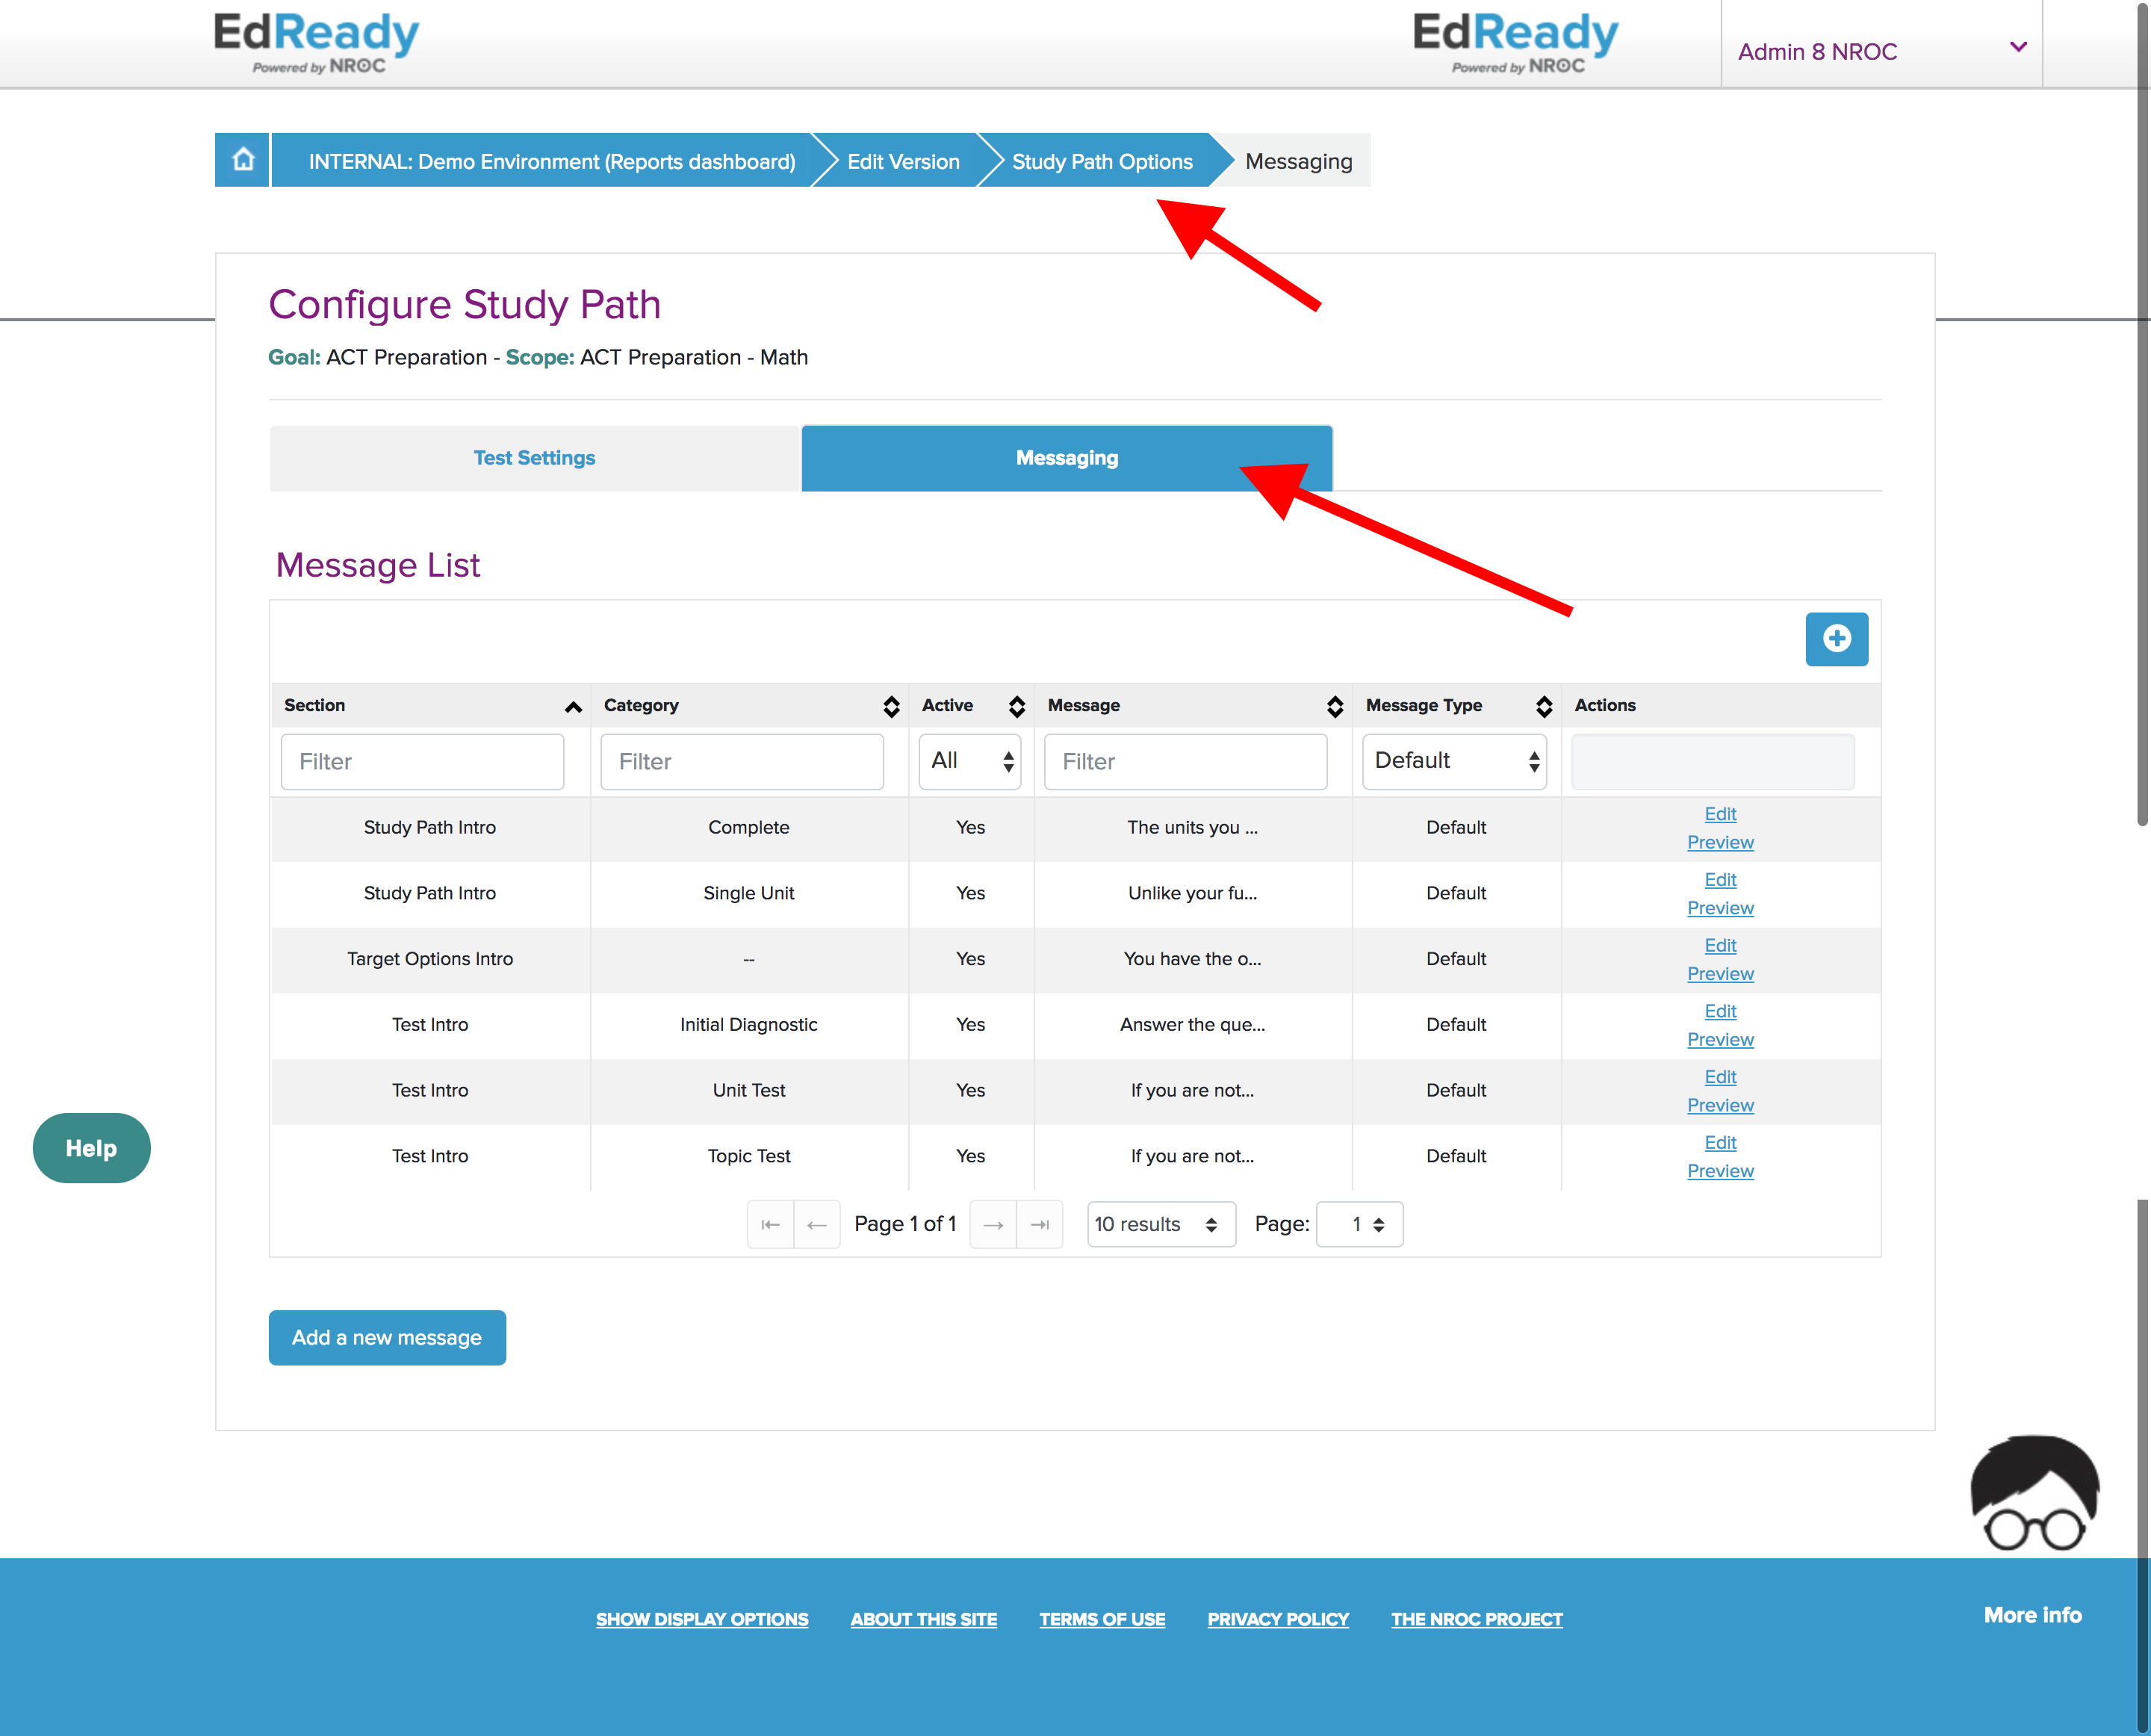 screenshot-staging.edready.org-2017-12-13-17-23-36-686.png